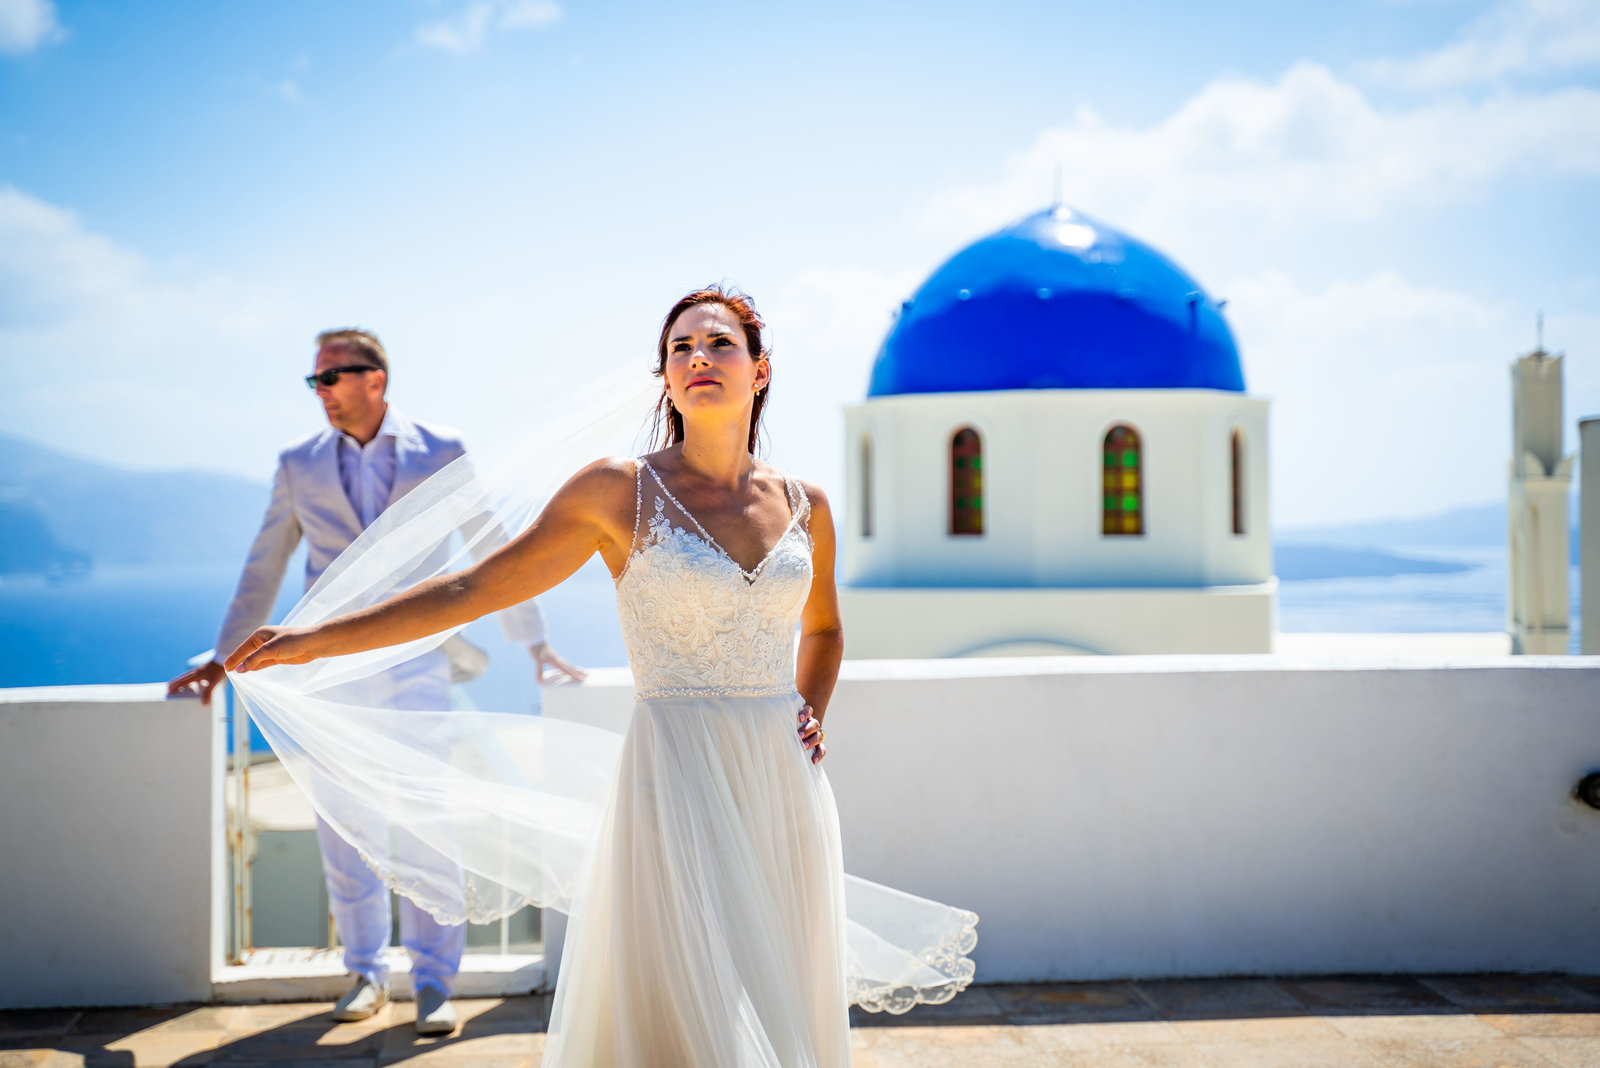 jSantorni-greece-athens-wedding-405-brides-photographer